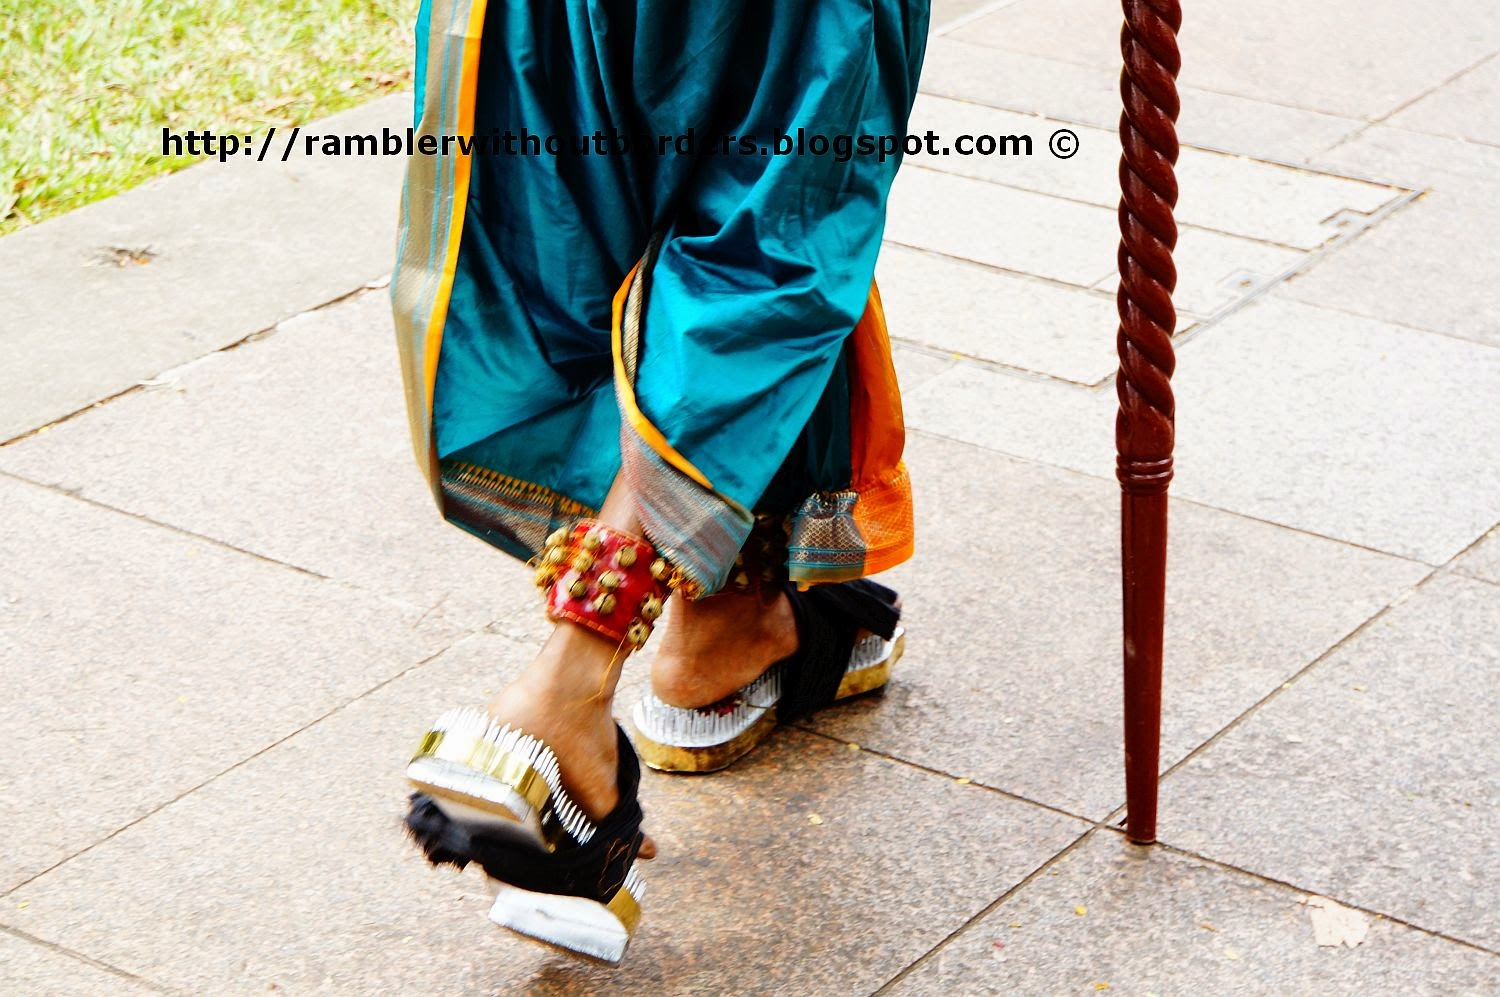 Devotee wearing sandals with metal spikes during Thaipusam Festival, Singapore